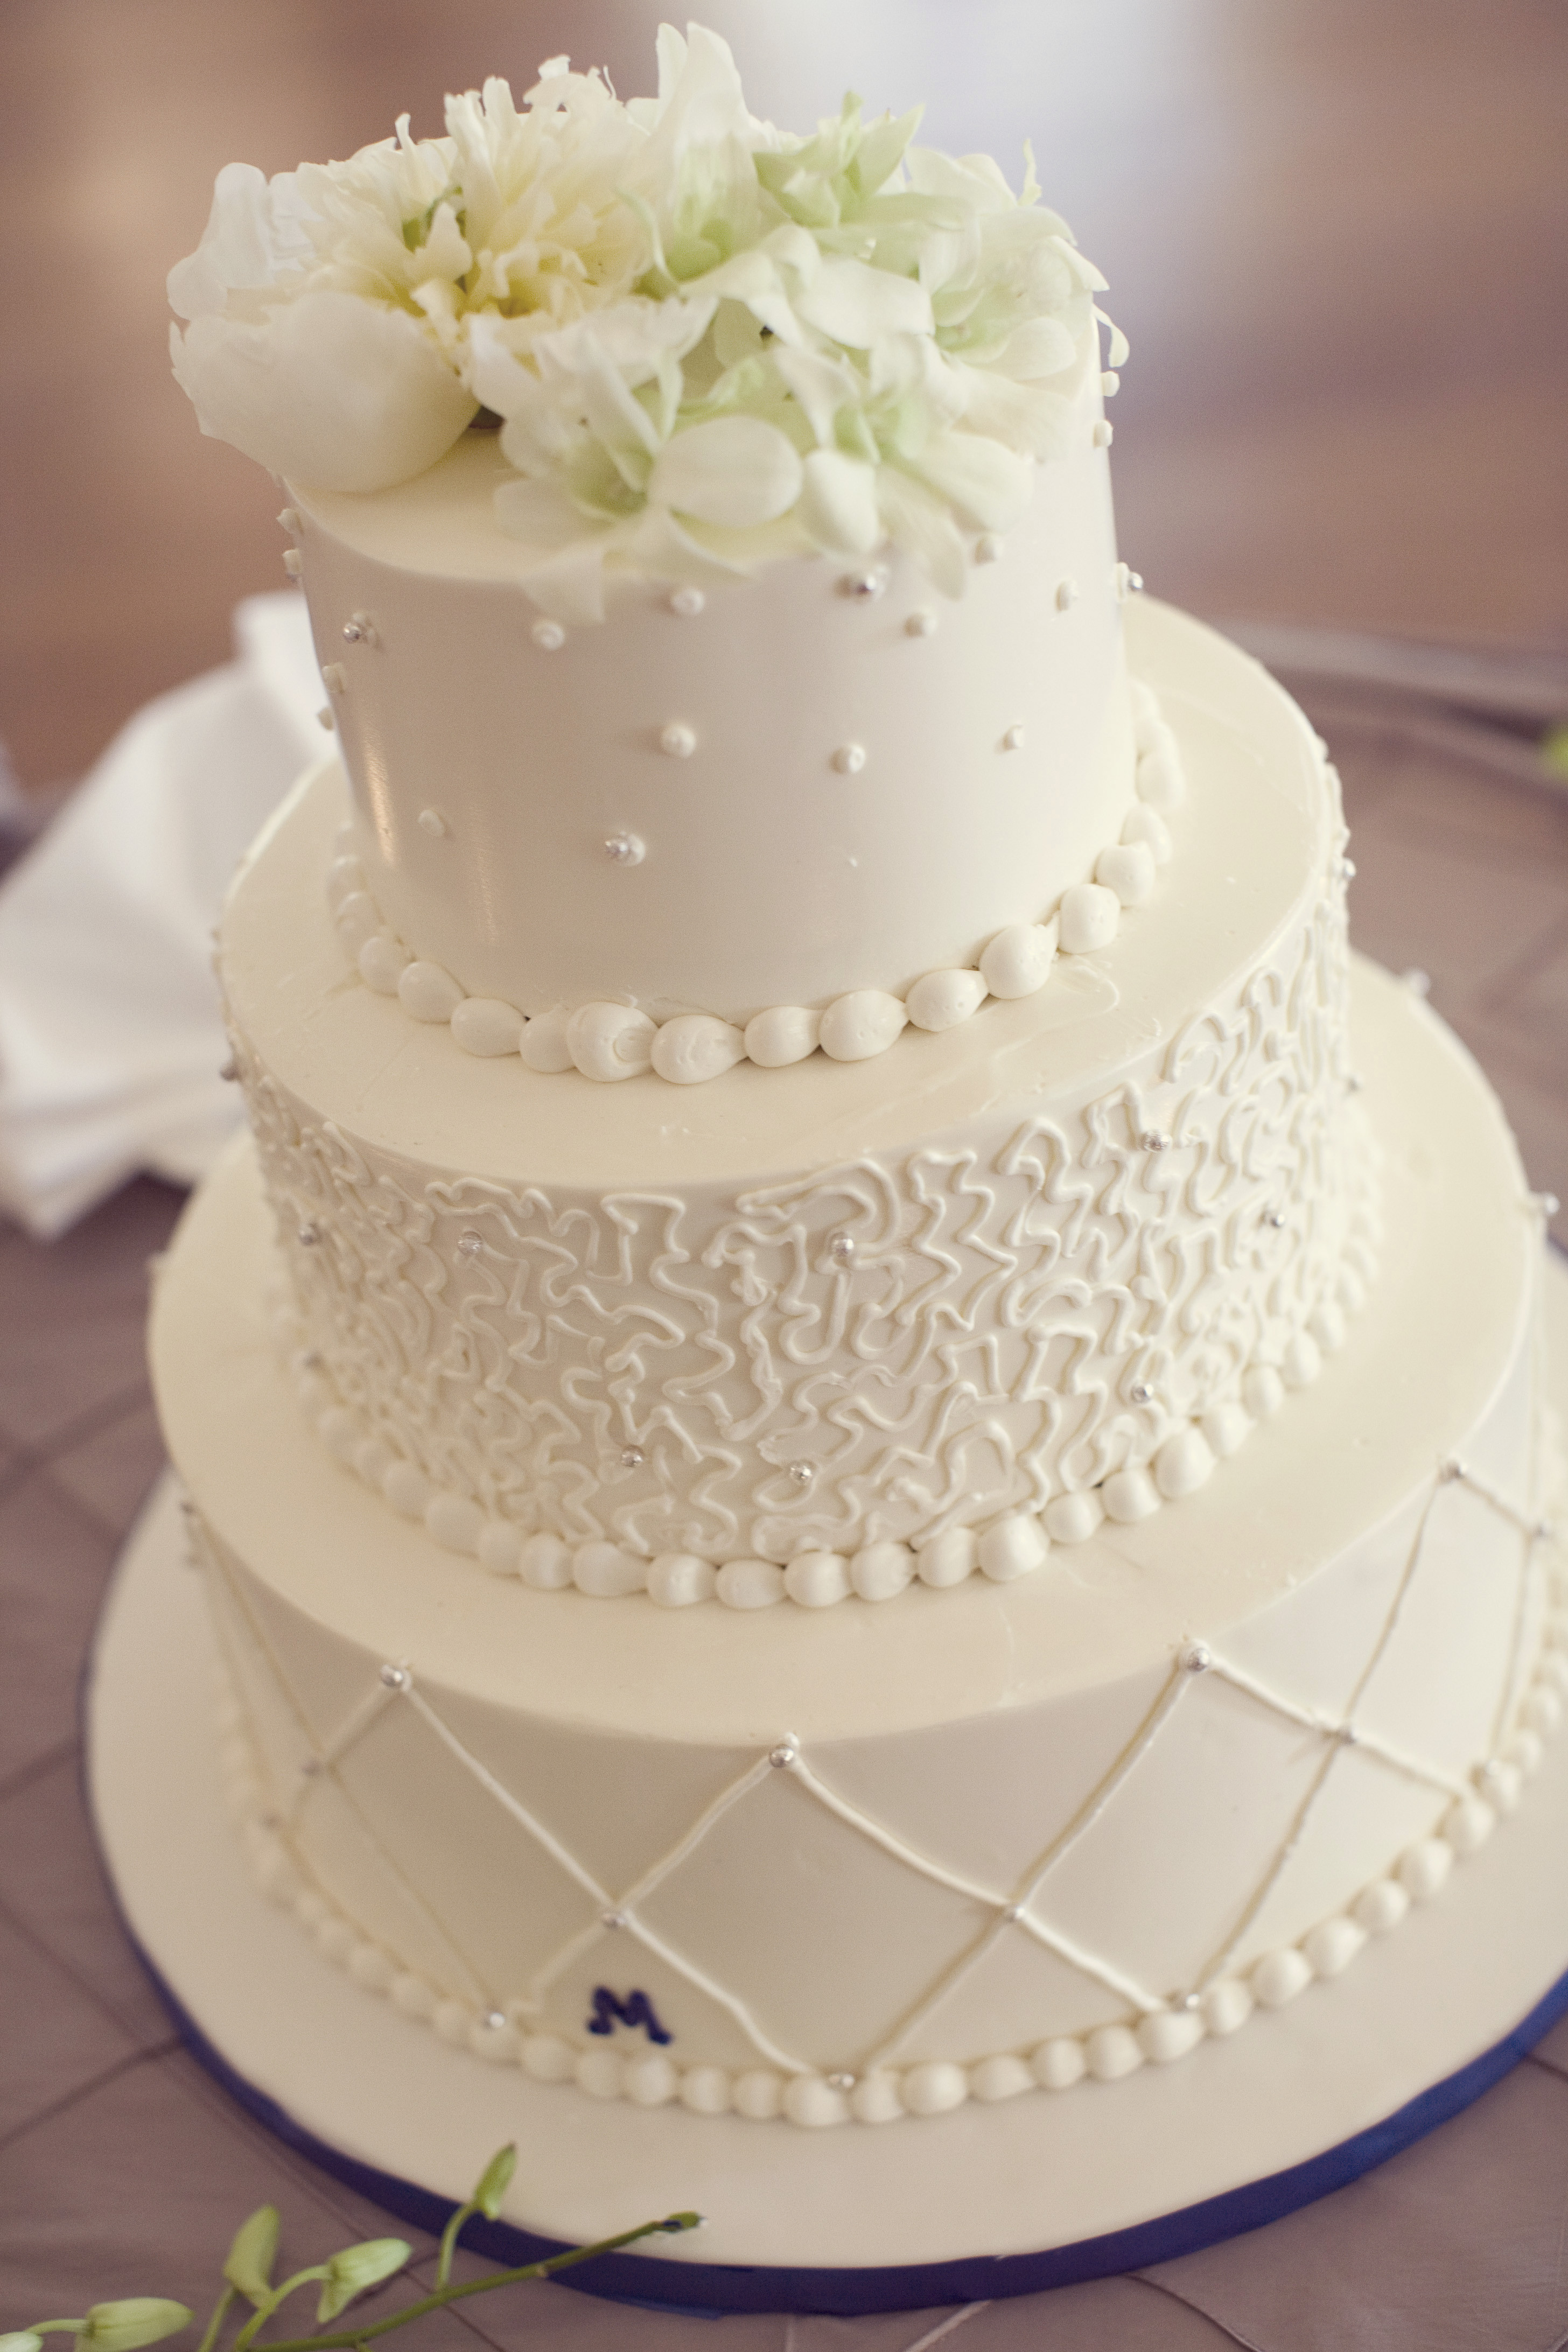 Icing Wedding Cakes  Wedding Cake Frosting Recipe — Dishmaps